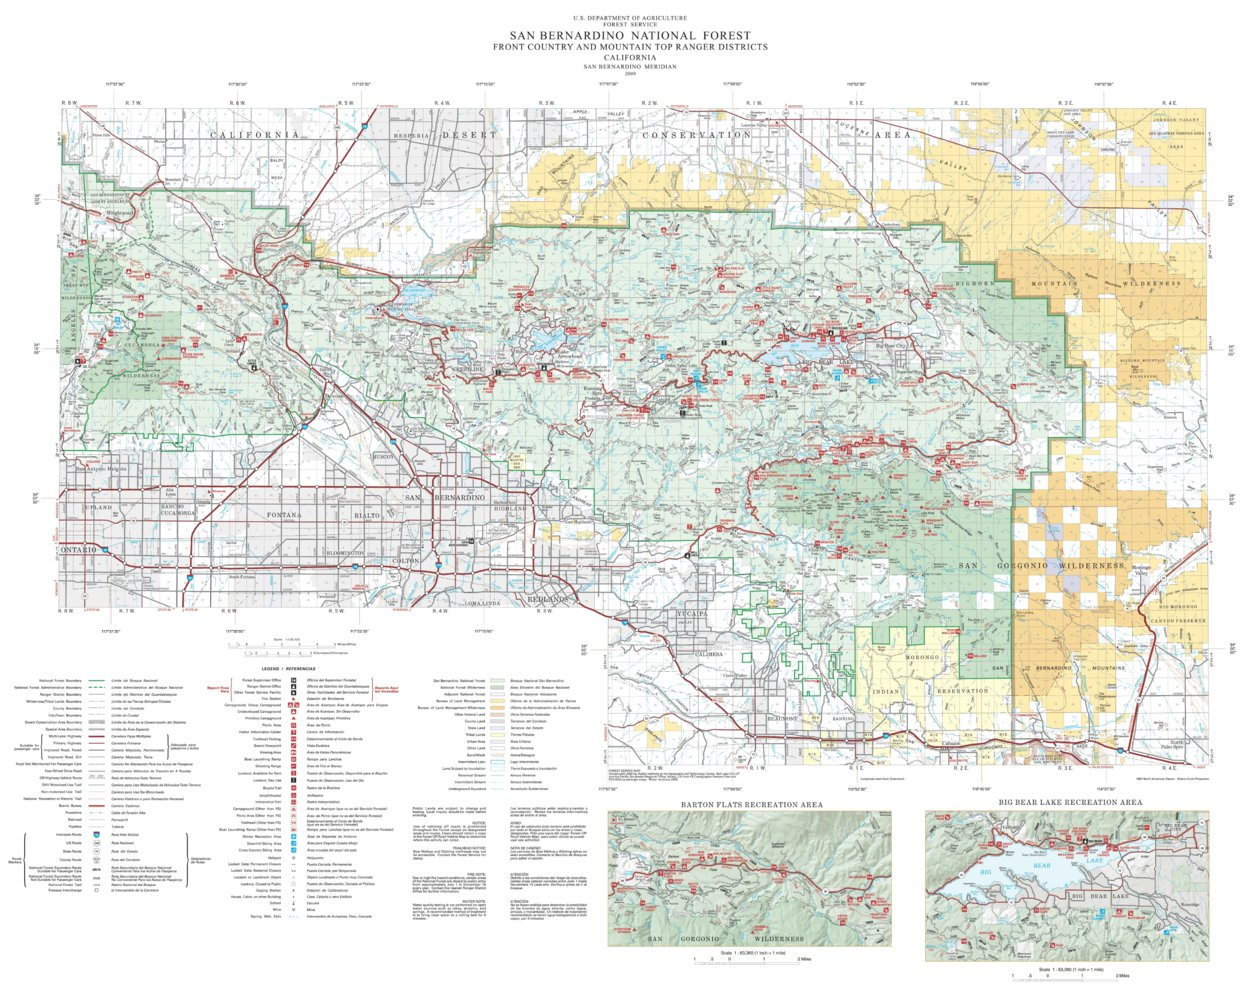 San Bernardino National Forest Visitor Map - North (2009 ... on moreno valley map, rancho cucamonga map, palm springs map, south coast metro map, downtown l.a. map, downieville map, banning map, imperial valley map, bernardino county map, santa clara map, riverside map, sacramento map, desert cities map, mission gorge map, sonoma co map, ventura county map, mt. san antonio map, brigham city map, canyon crest map, fontana map,